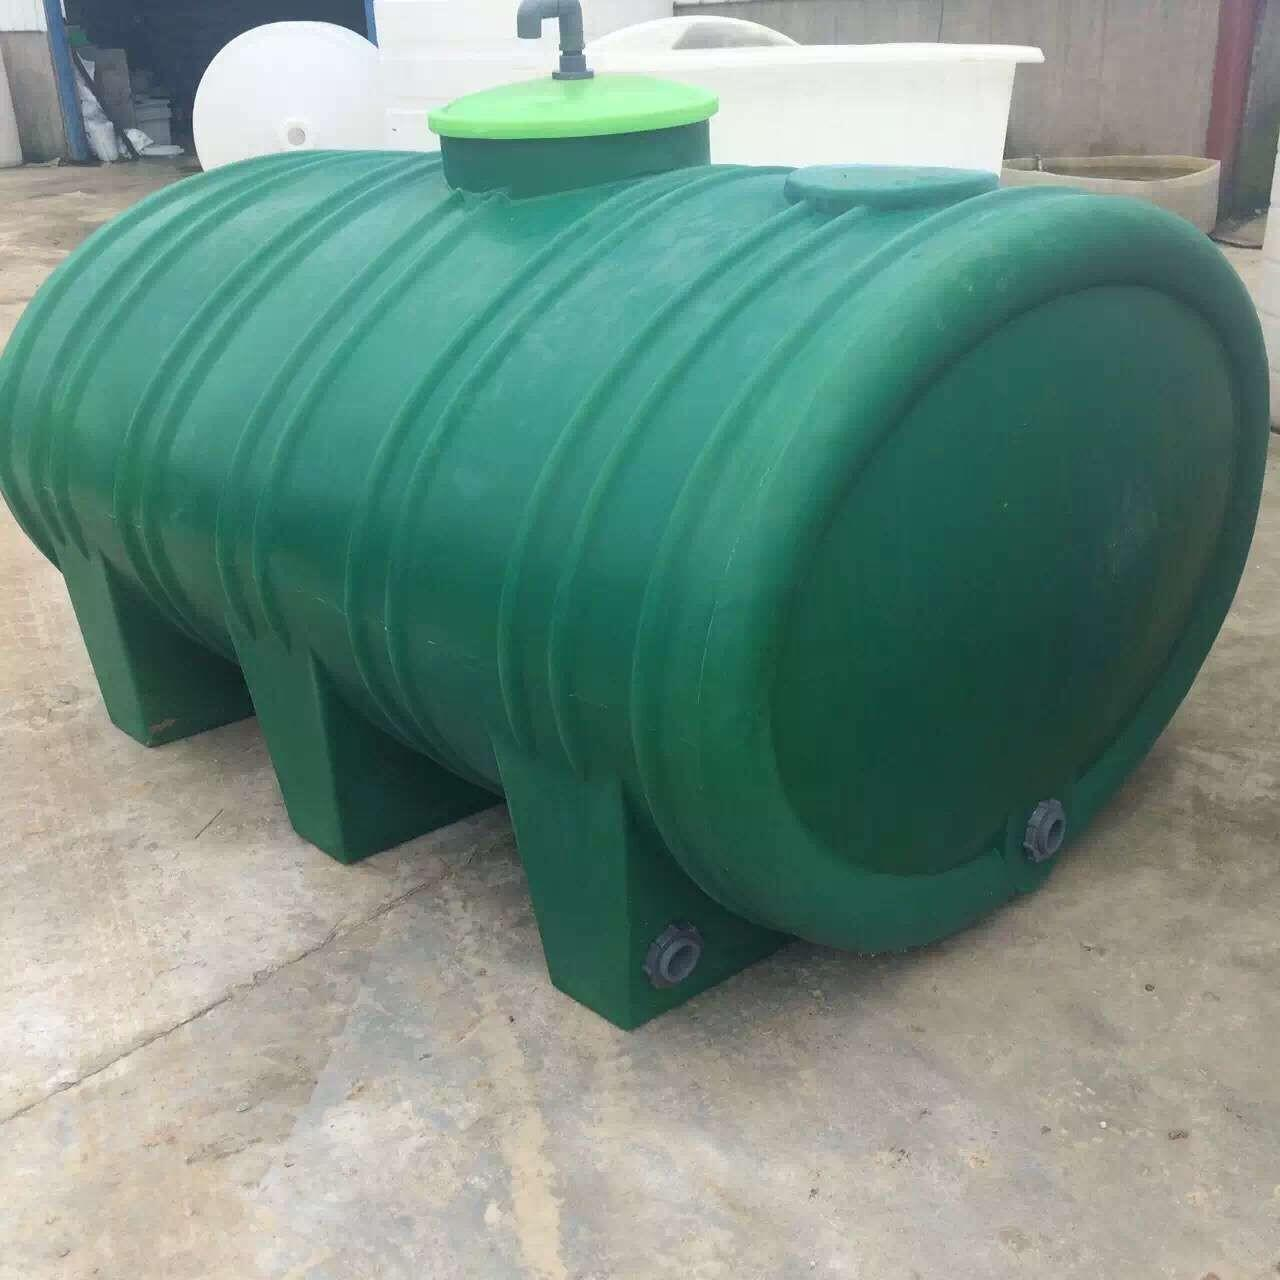 China 2000 litre Plastic horizontal tank pe tank malaysia in other plastic building materials wholesale